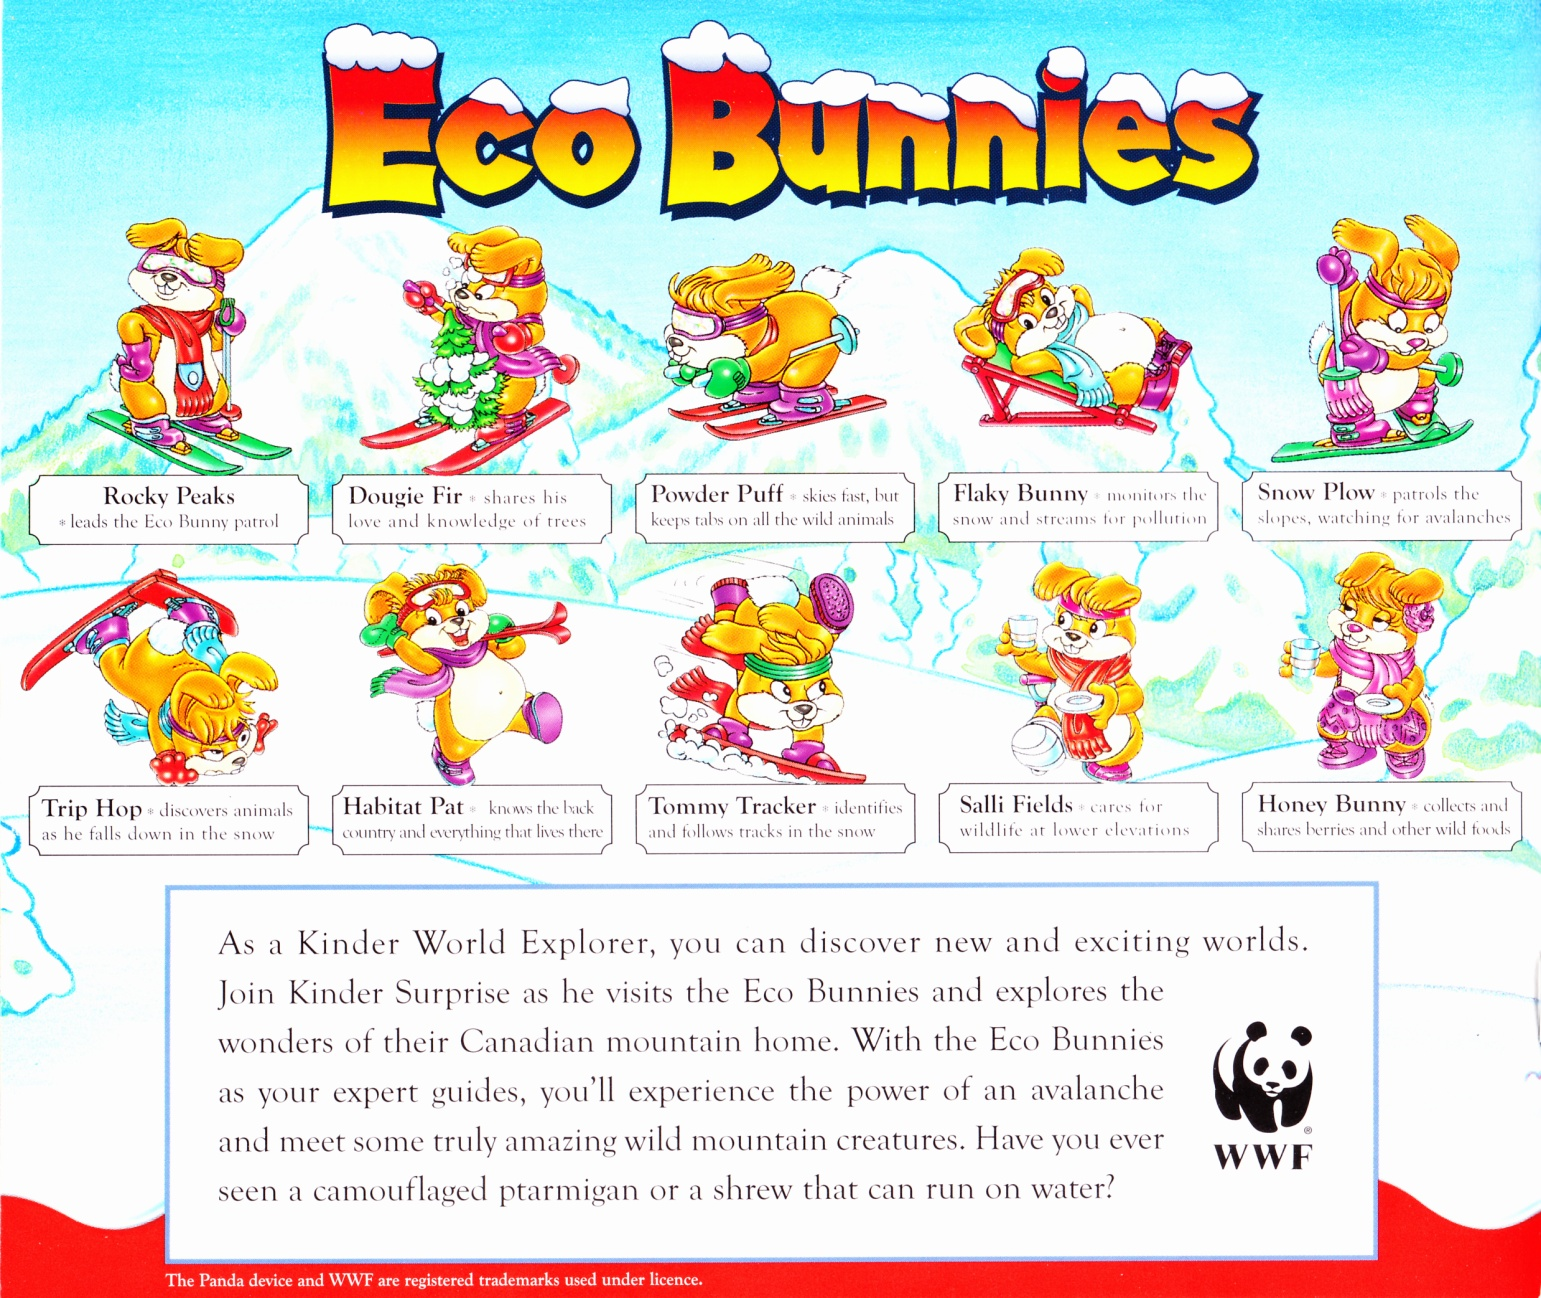 C:\Users\Robert\Documents\CARTOONING ILLUSTRATION ANIMATION\IMAGE BY CARTOONIST\T\THURMAN Mark, Kinder Surprise and the Eco Bunnies,1998, bc.jpg